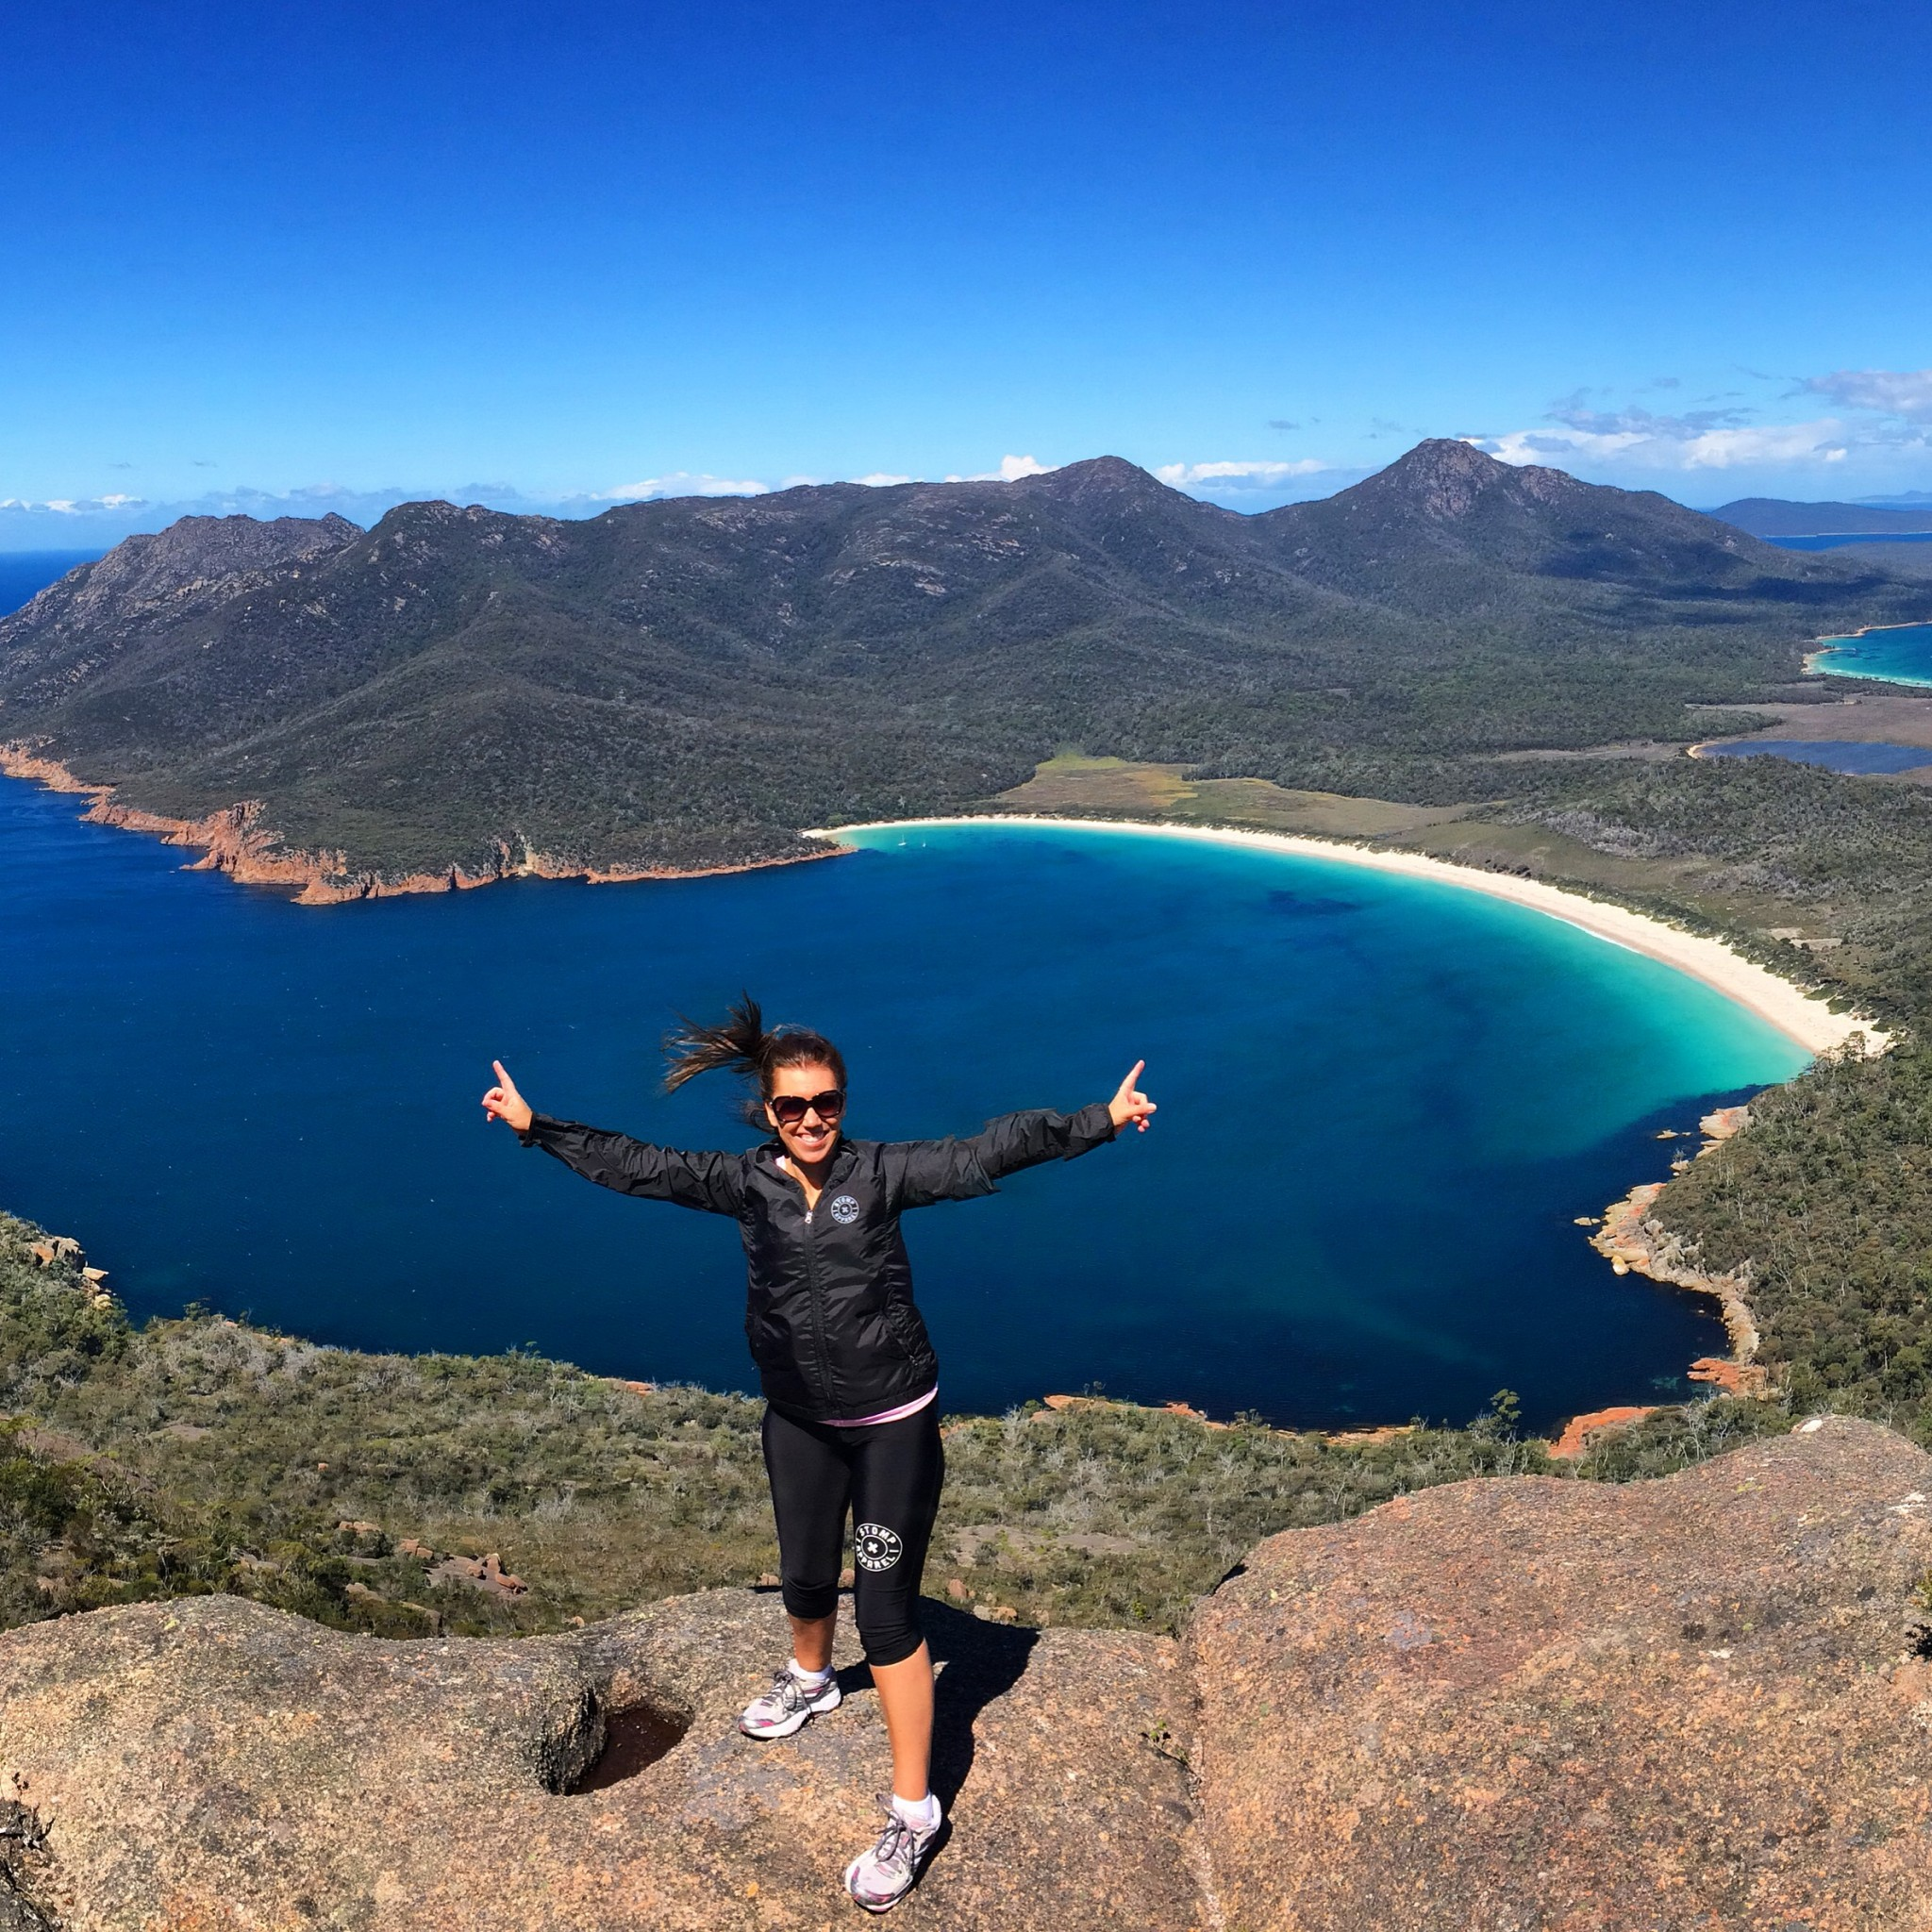 The spectacular view of Wineglass bay from the top of Mount Amos